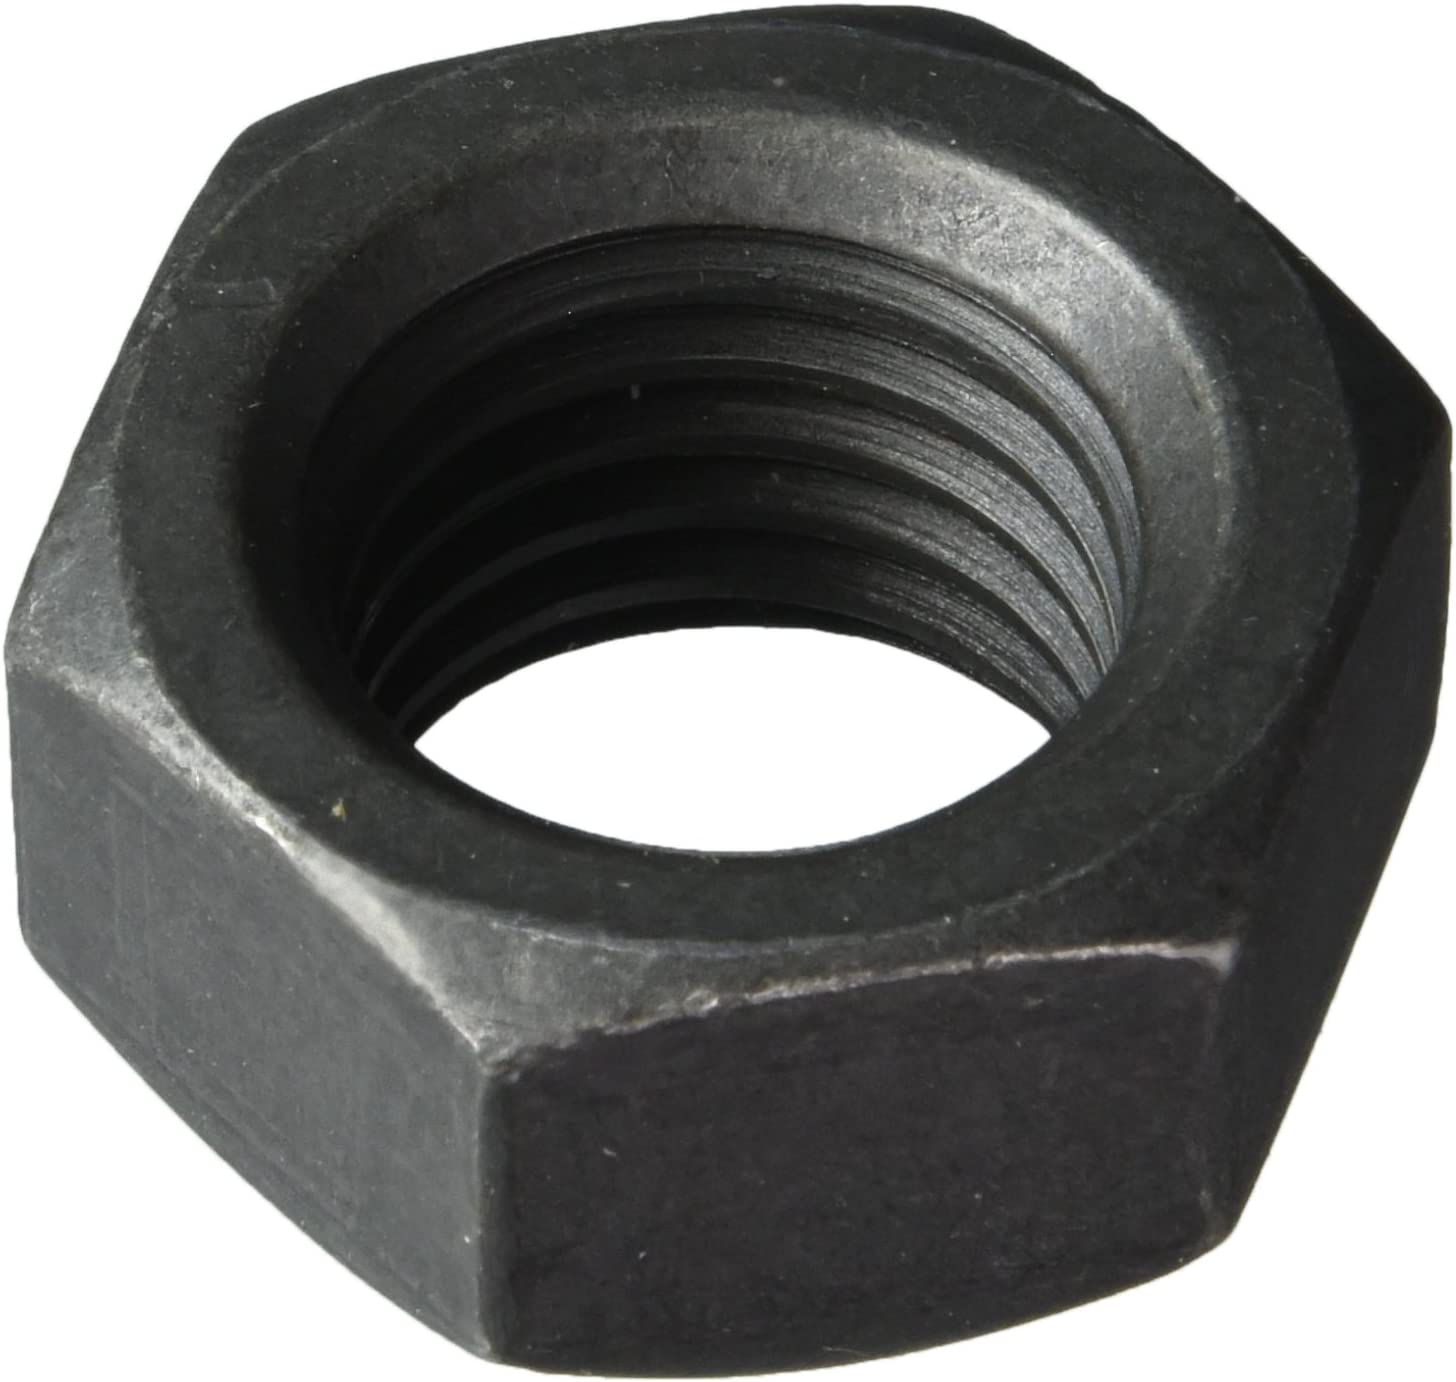 Piece-29 Hard-to-Find Fastener 014973403881 TypeC Lock Nuts 7//8-9